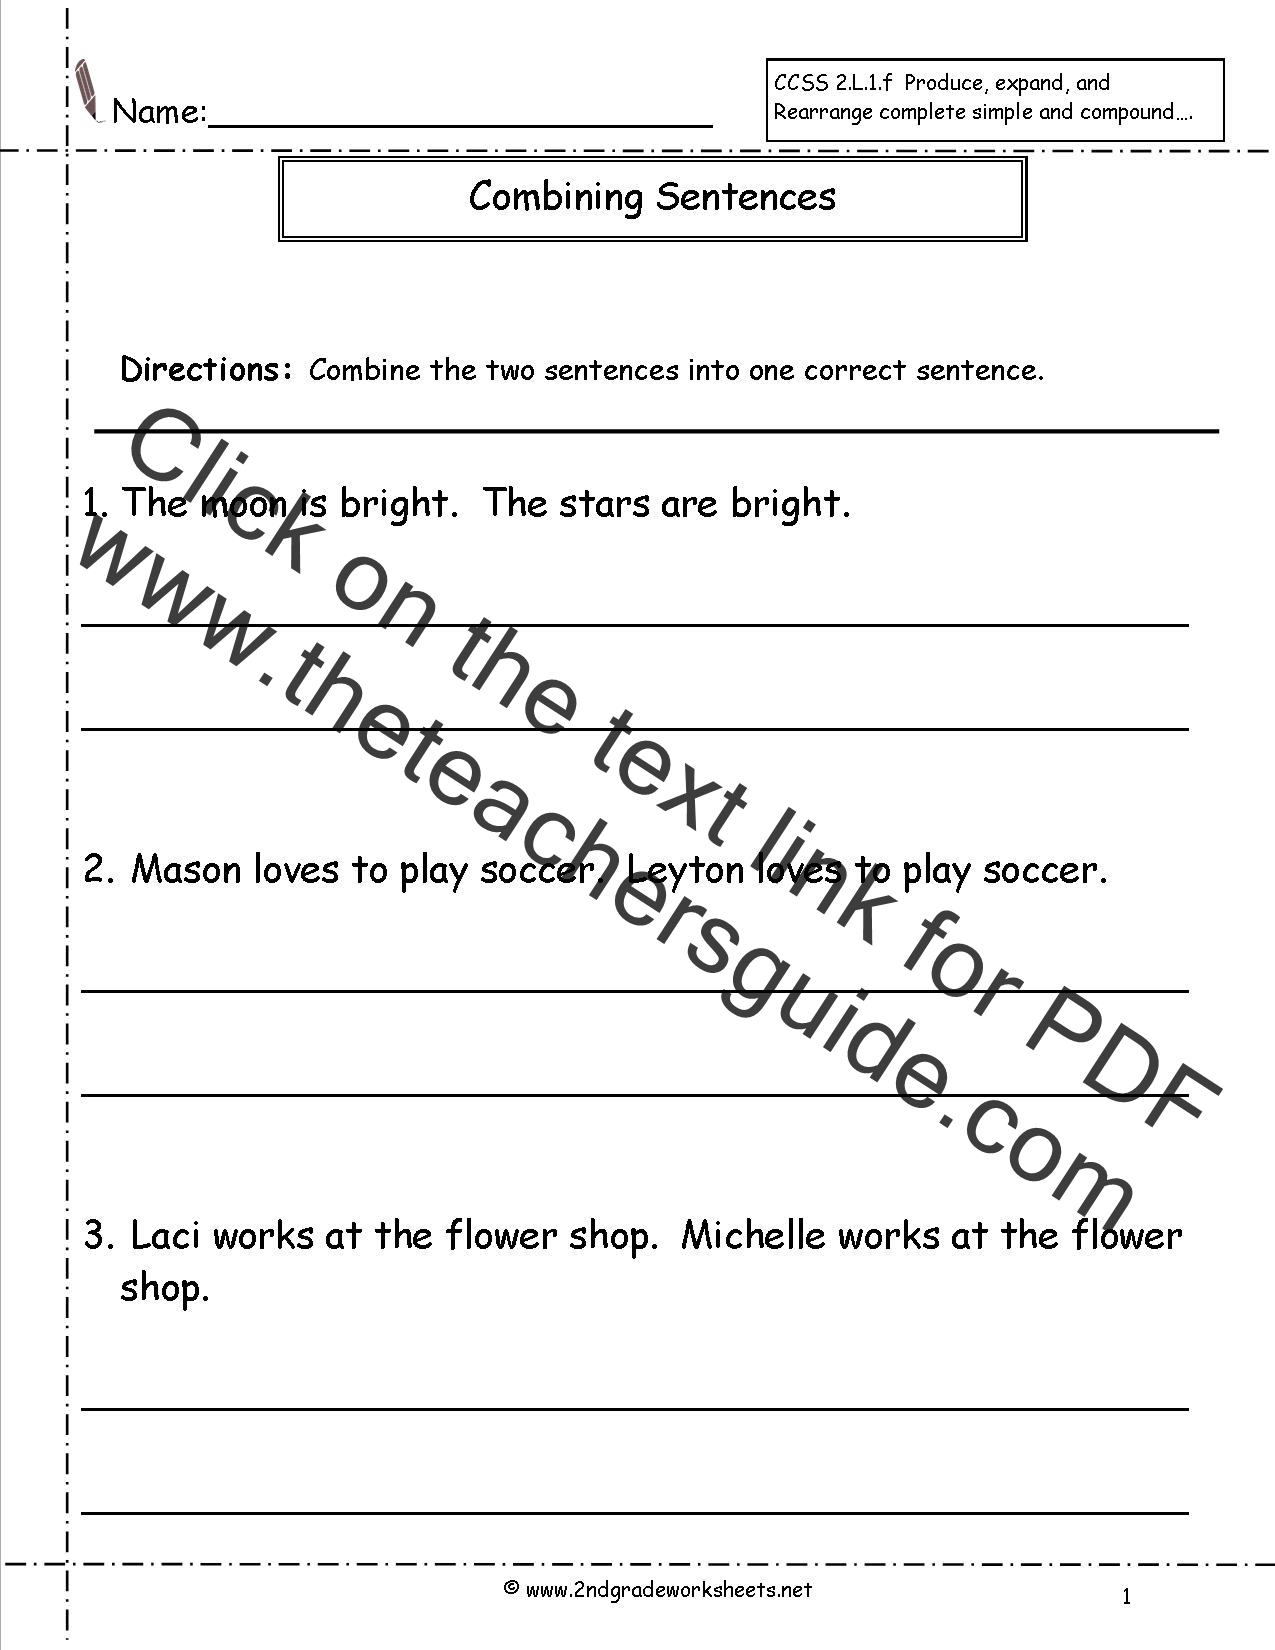 Worksheets Editing Practice Worksheets editing worksheets for 2nd grade free library third worksheet